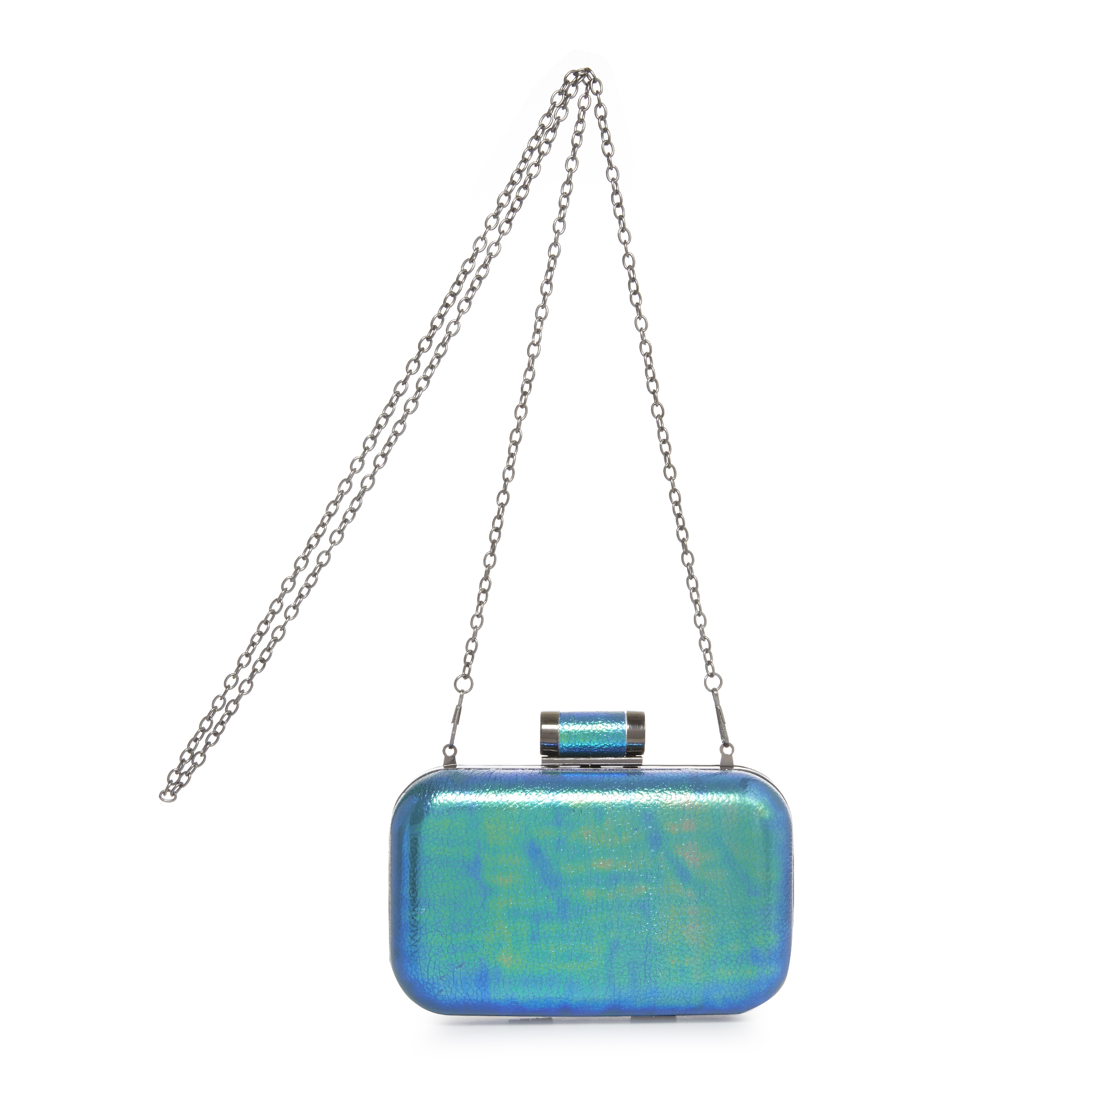 Metallic Blue Rave Camper Box Clutch Bag - €11